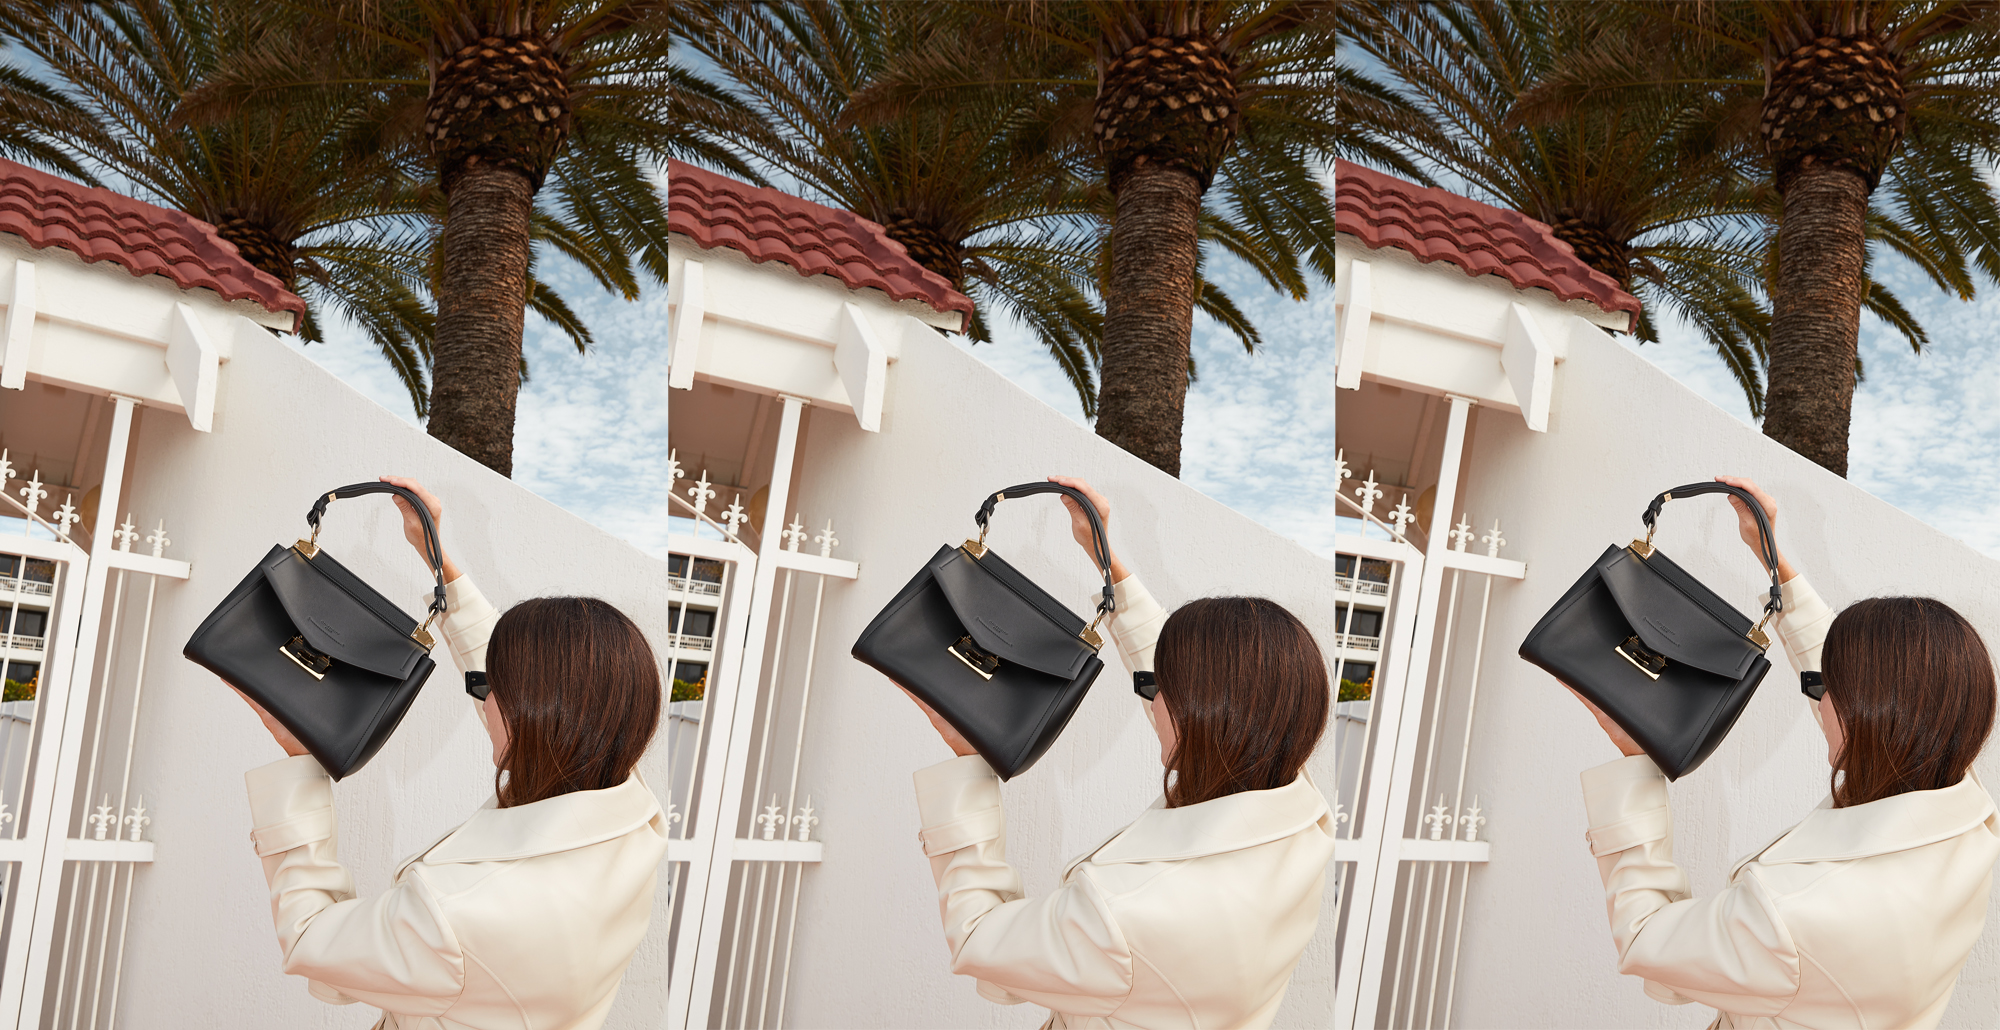 Givenchy, Mystic, Black Bag, Monochrome Outfit, Amanda Shadforth, Fashion